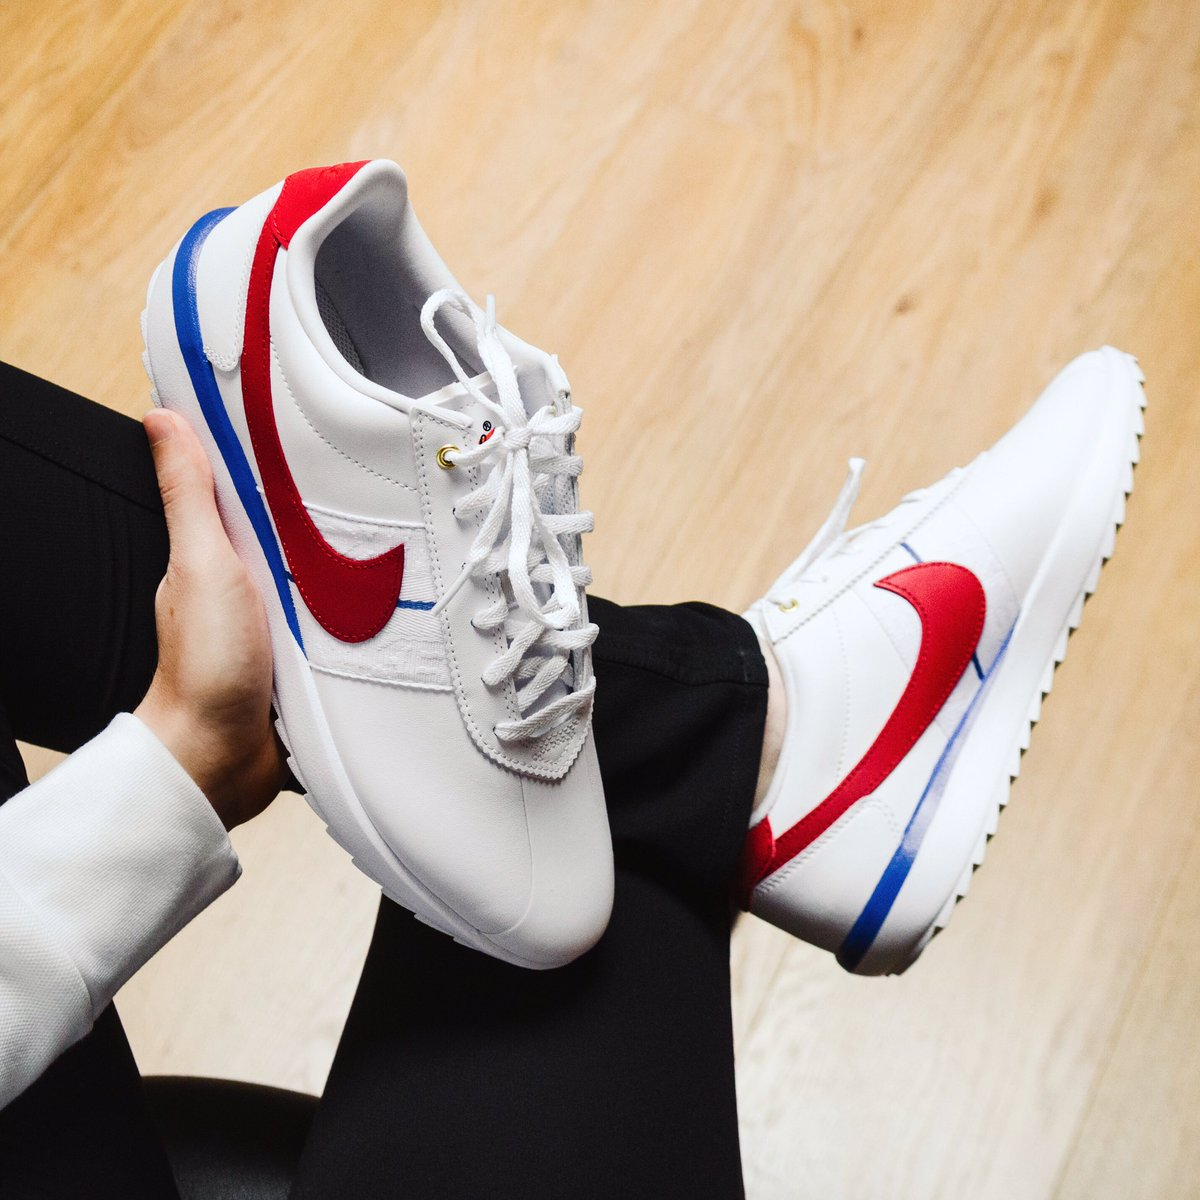 best sneakers 001c6 5fac2 One of the most OG colour ways since the 90s the Nike Cortez ...